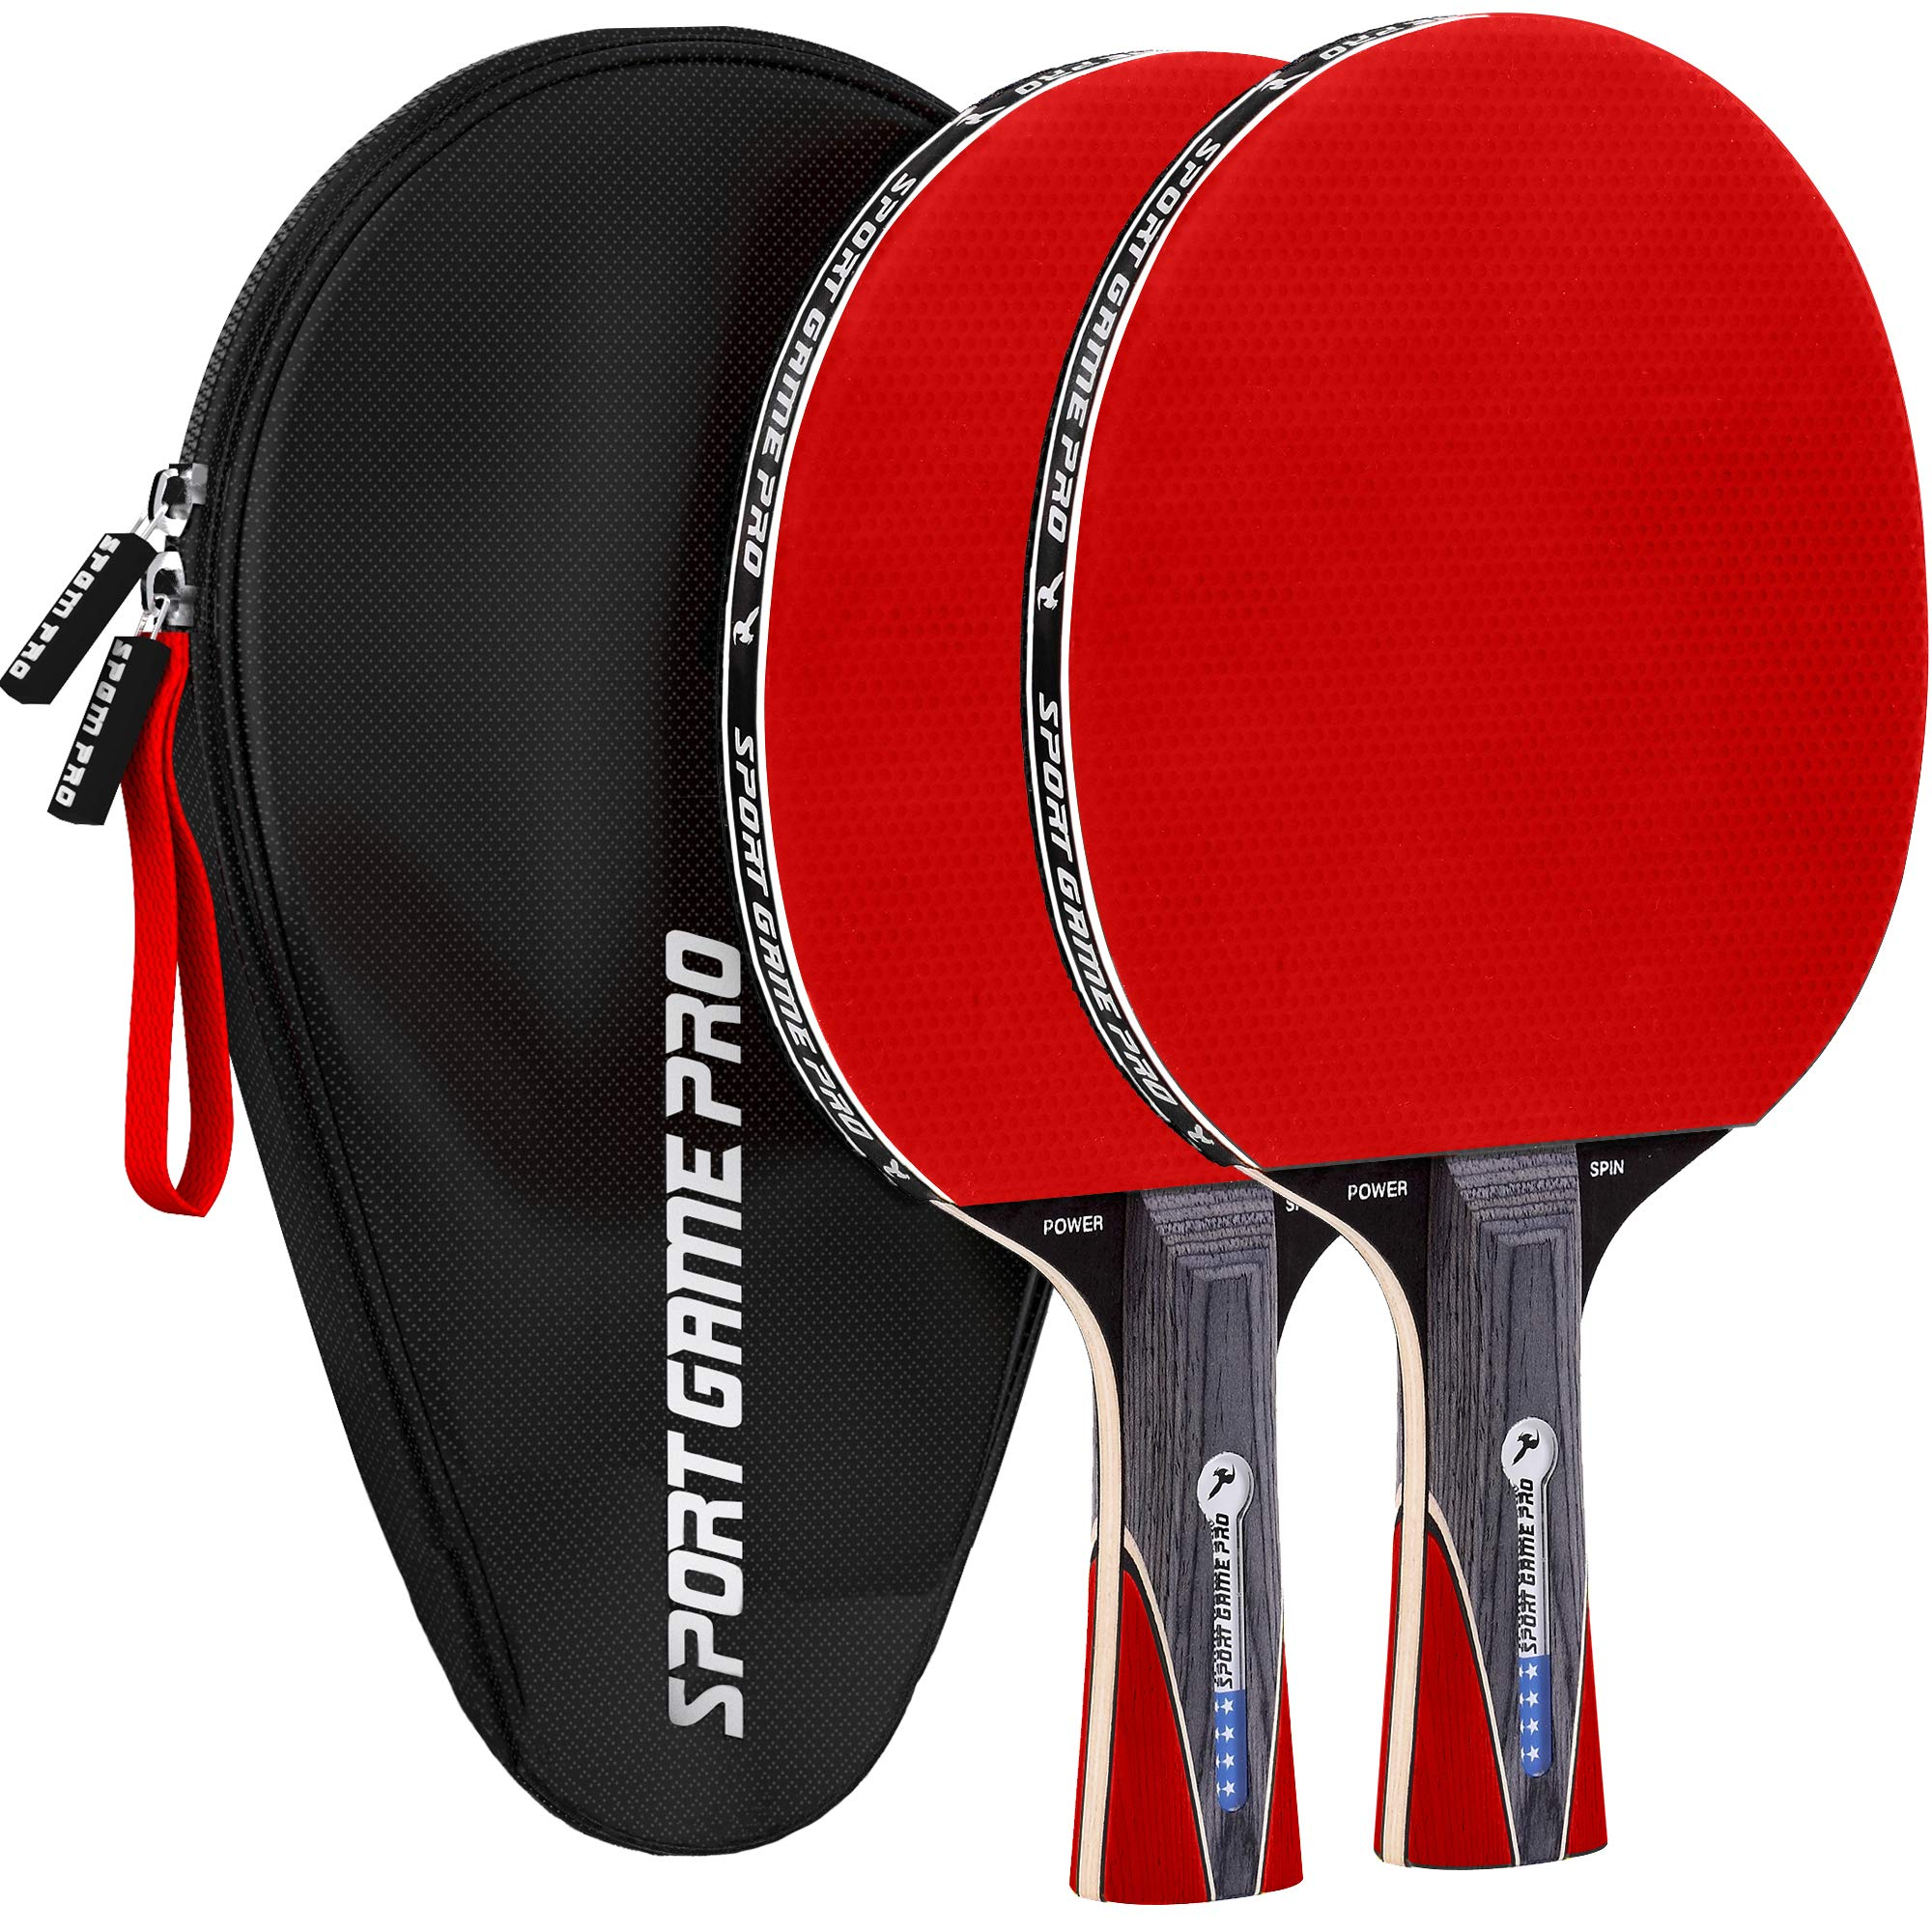 14bf653b5c696 Sport Game Pro Ping Pong Paddle with Killer Spin - Table Tennis Paddle with  Comfort Grip 2.0 mm Spunge - Table Tennis Racket Bat with Gift Box